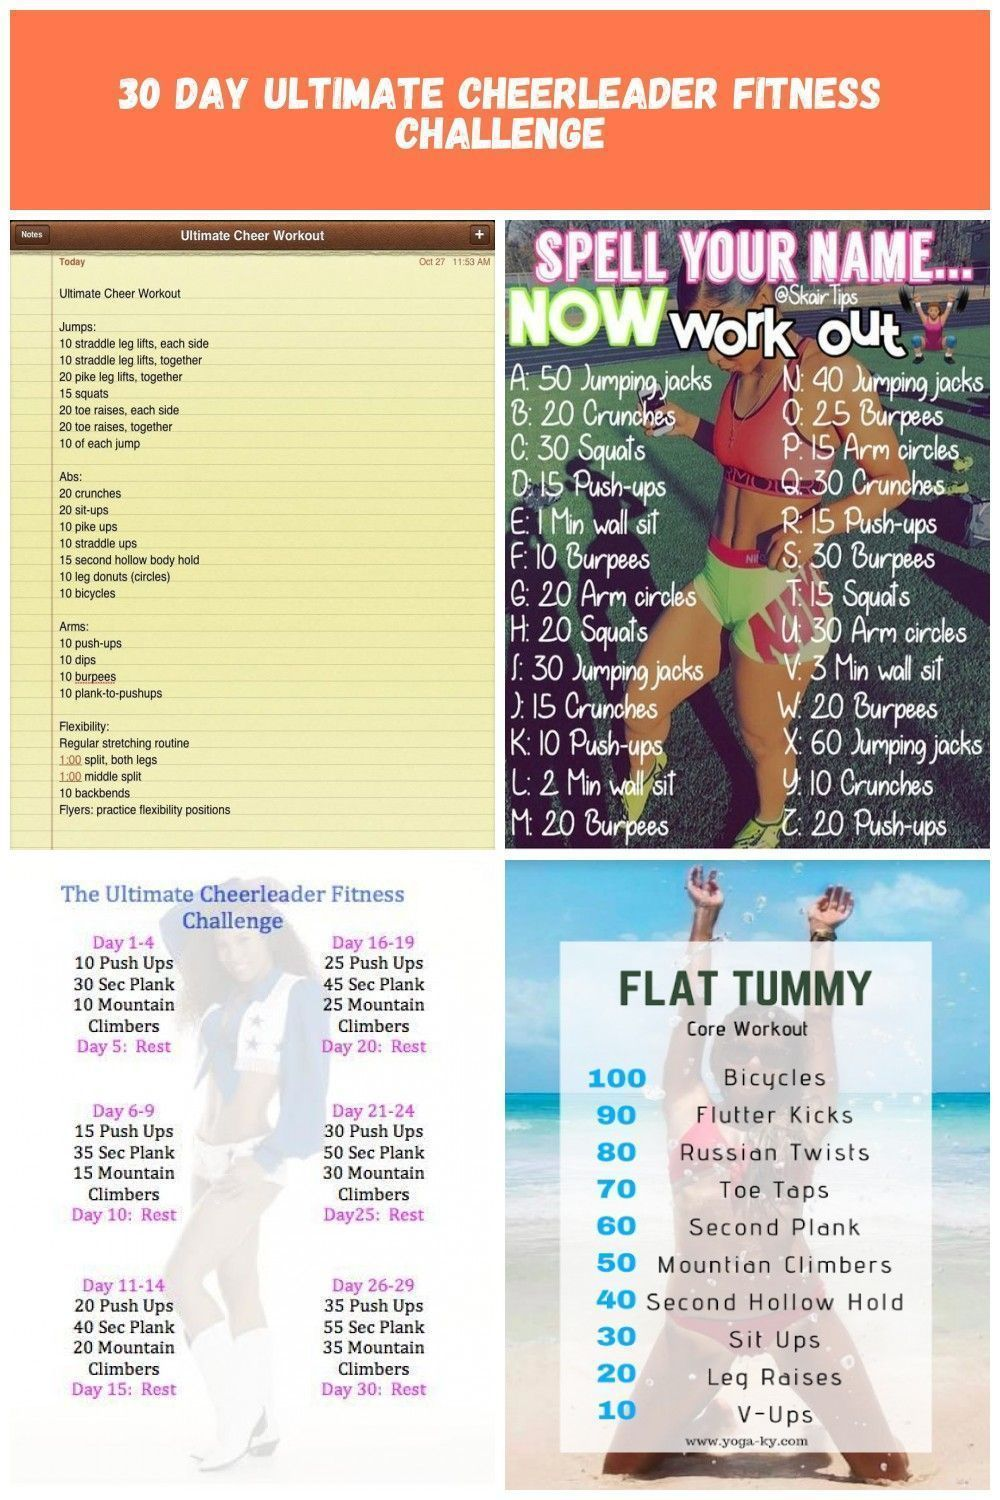 Ultimate Cheer Workout Cheer Cheerleading Cheerleader Fitnessroutine Cheer Workouts Cheerworkouts Ul Cheer Workouts One Song Workouts Cheer Athletics Abs